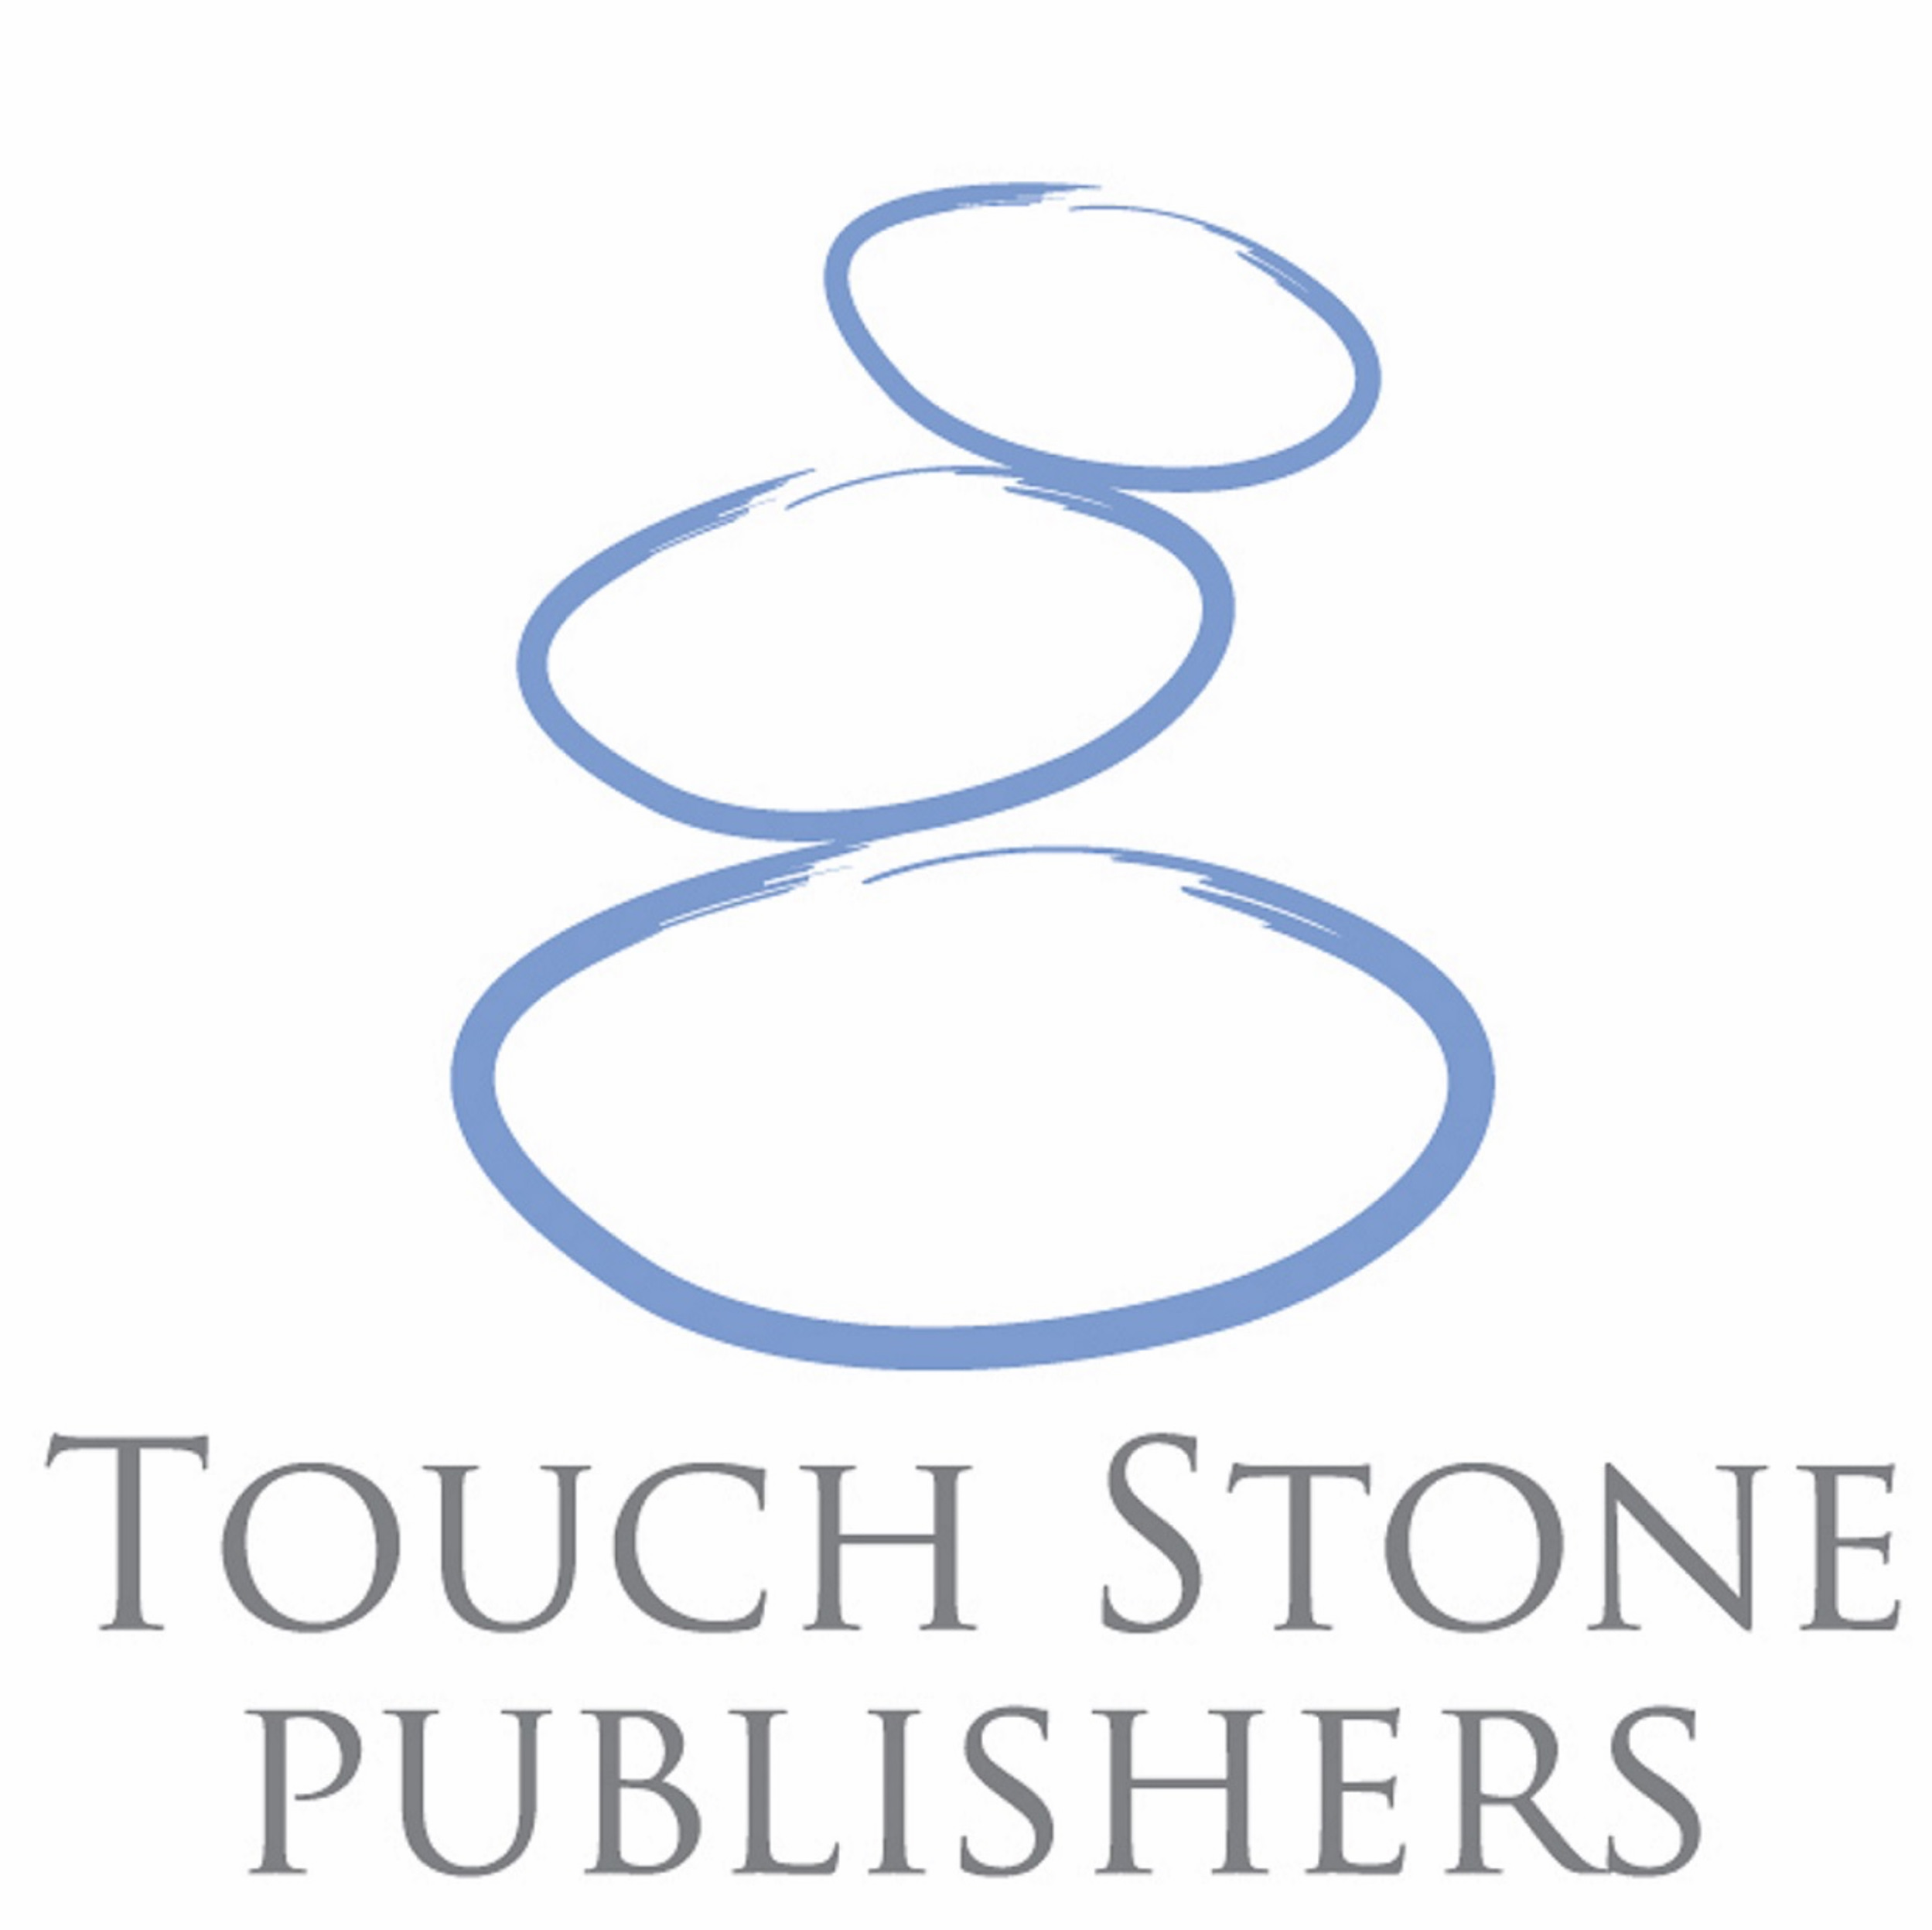 Touch Stone Publishers LTD